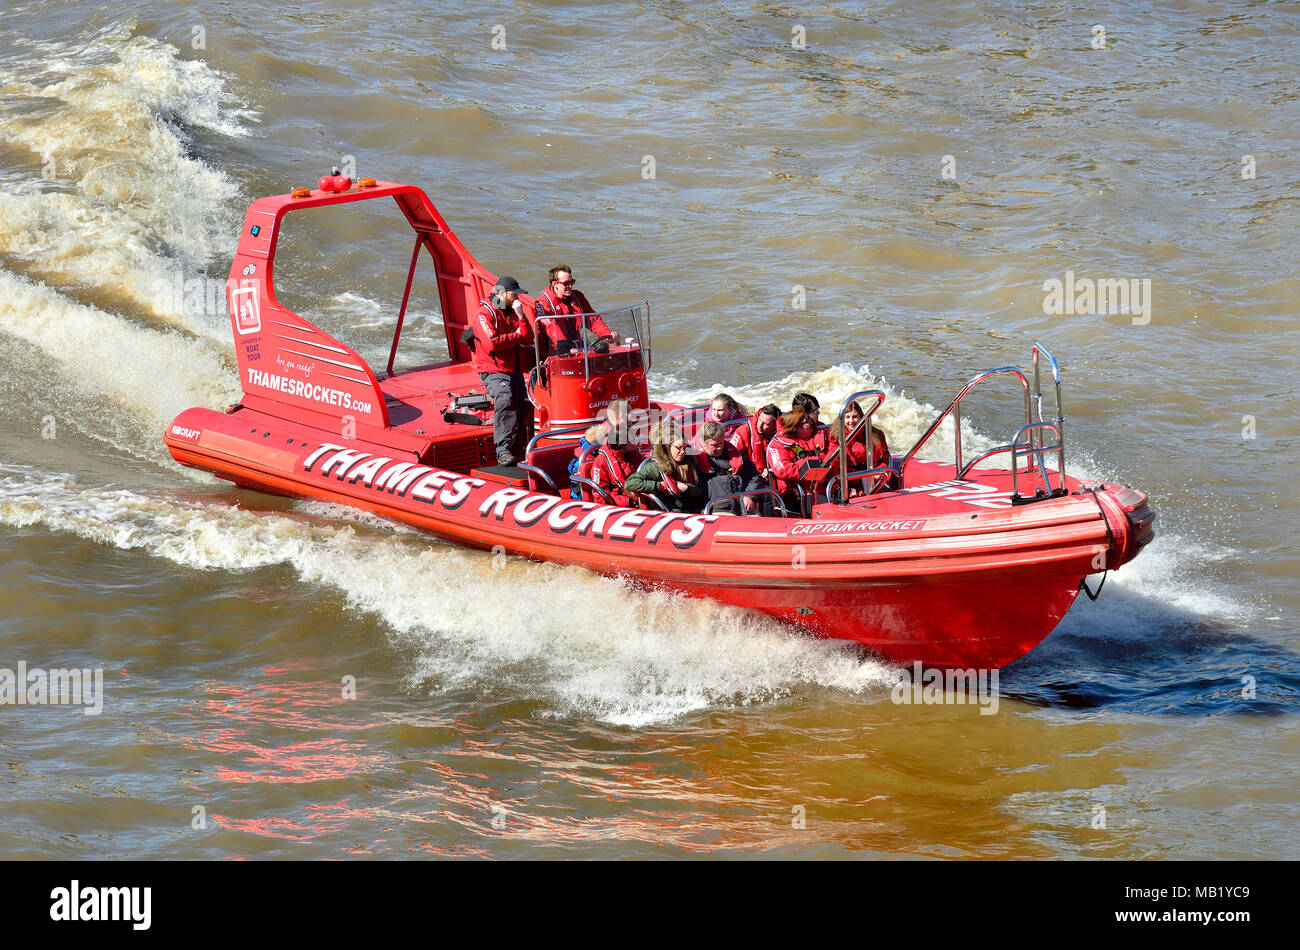 London, England, UK. 'Thames Rockets' speedboat 'Captain Rocket' high speed Thames tour - Stock Image